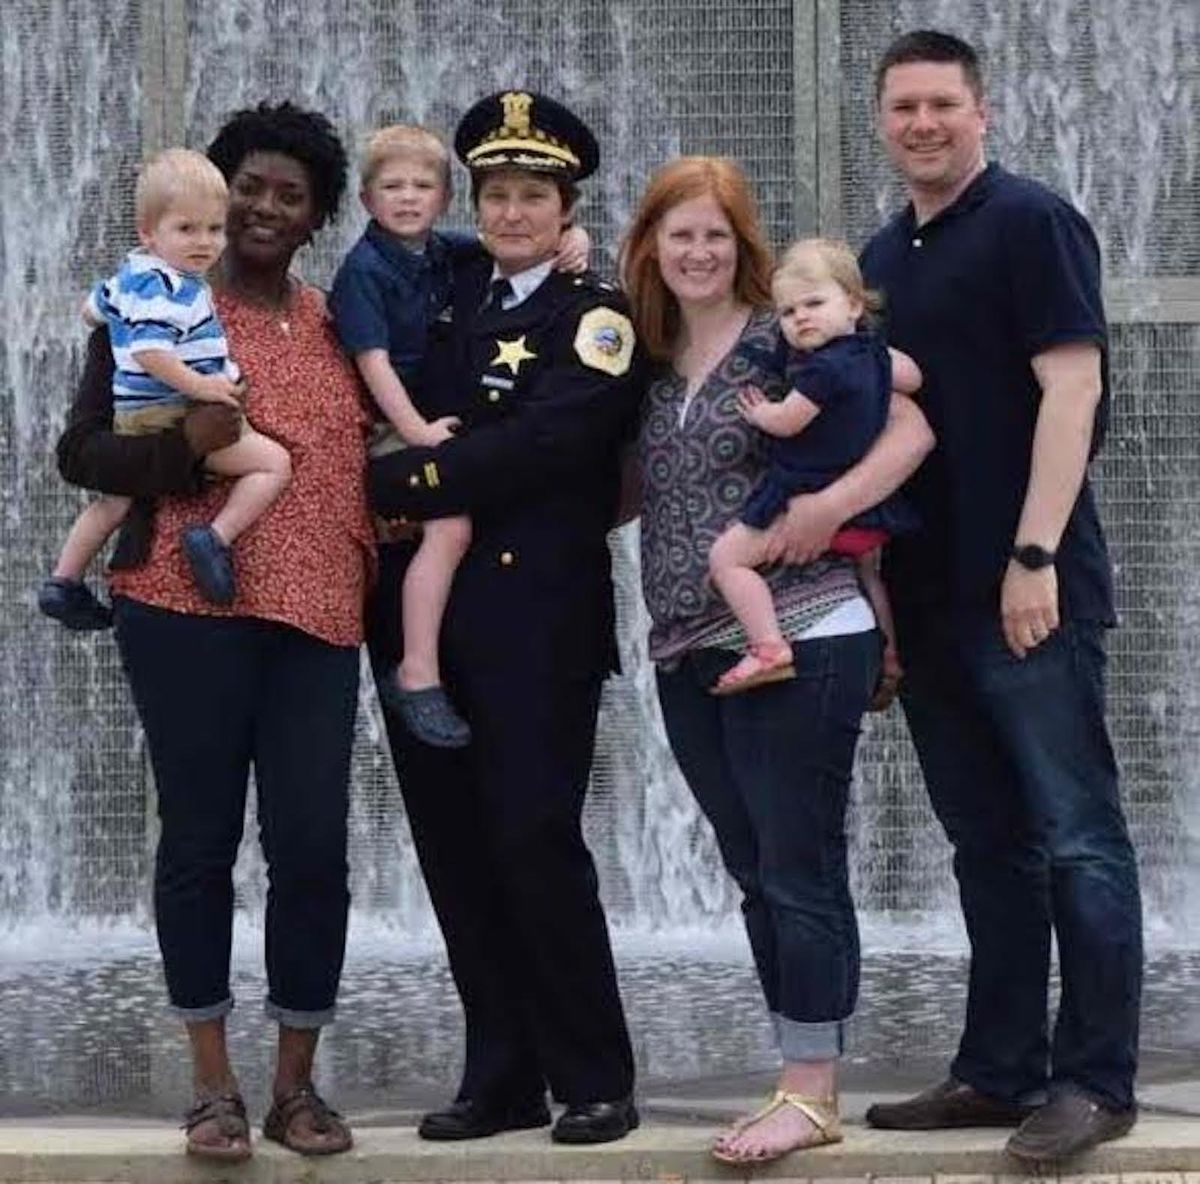 Johanne M. Kenol and her wife Nancy Lipman (center) with Lipman's son Christopher and wife Diana and their three children.